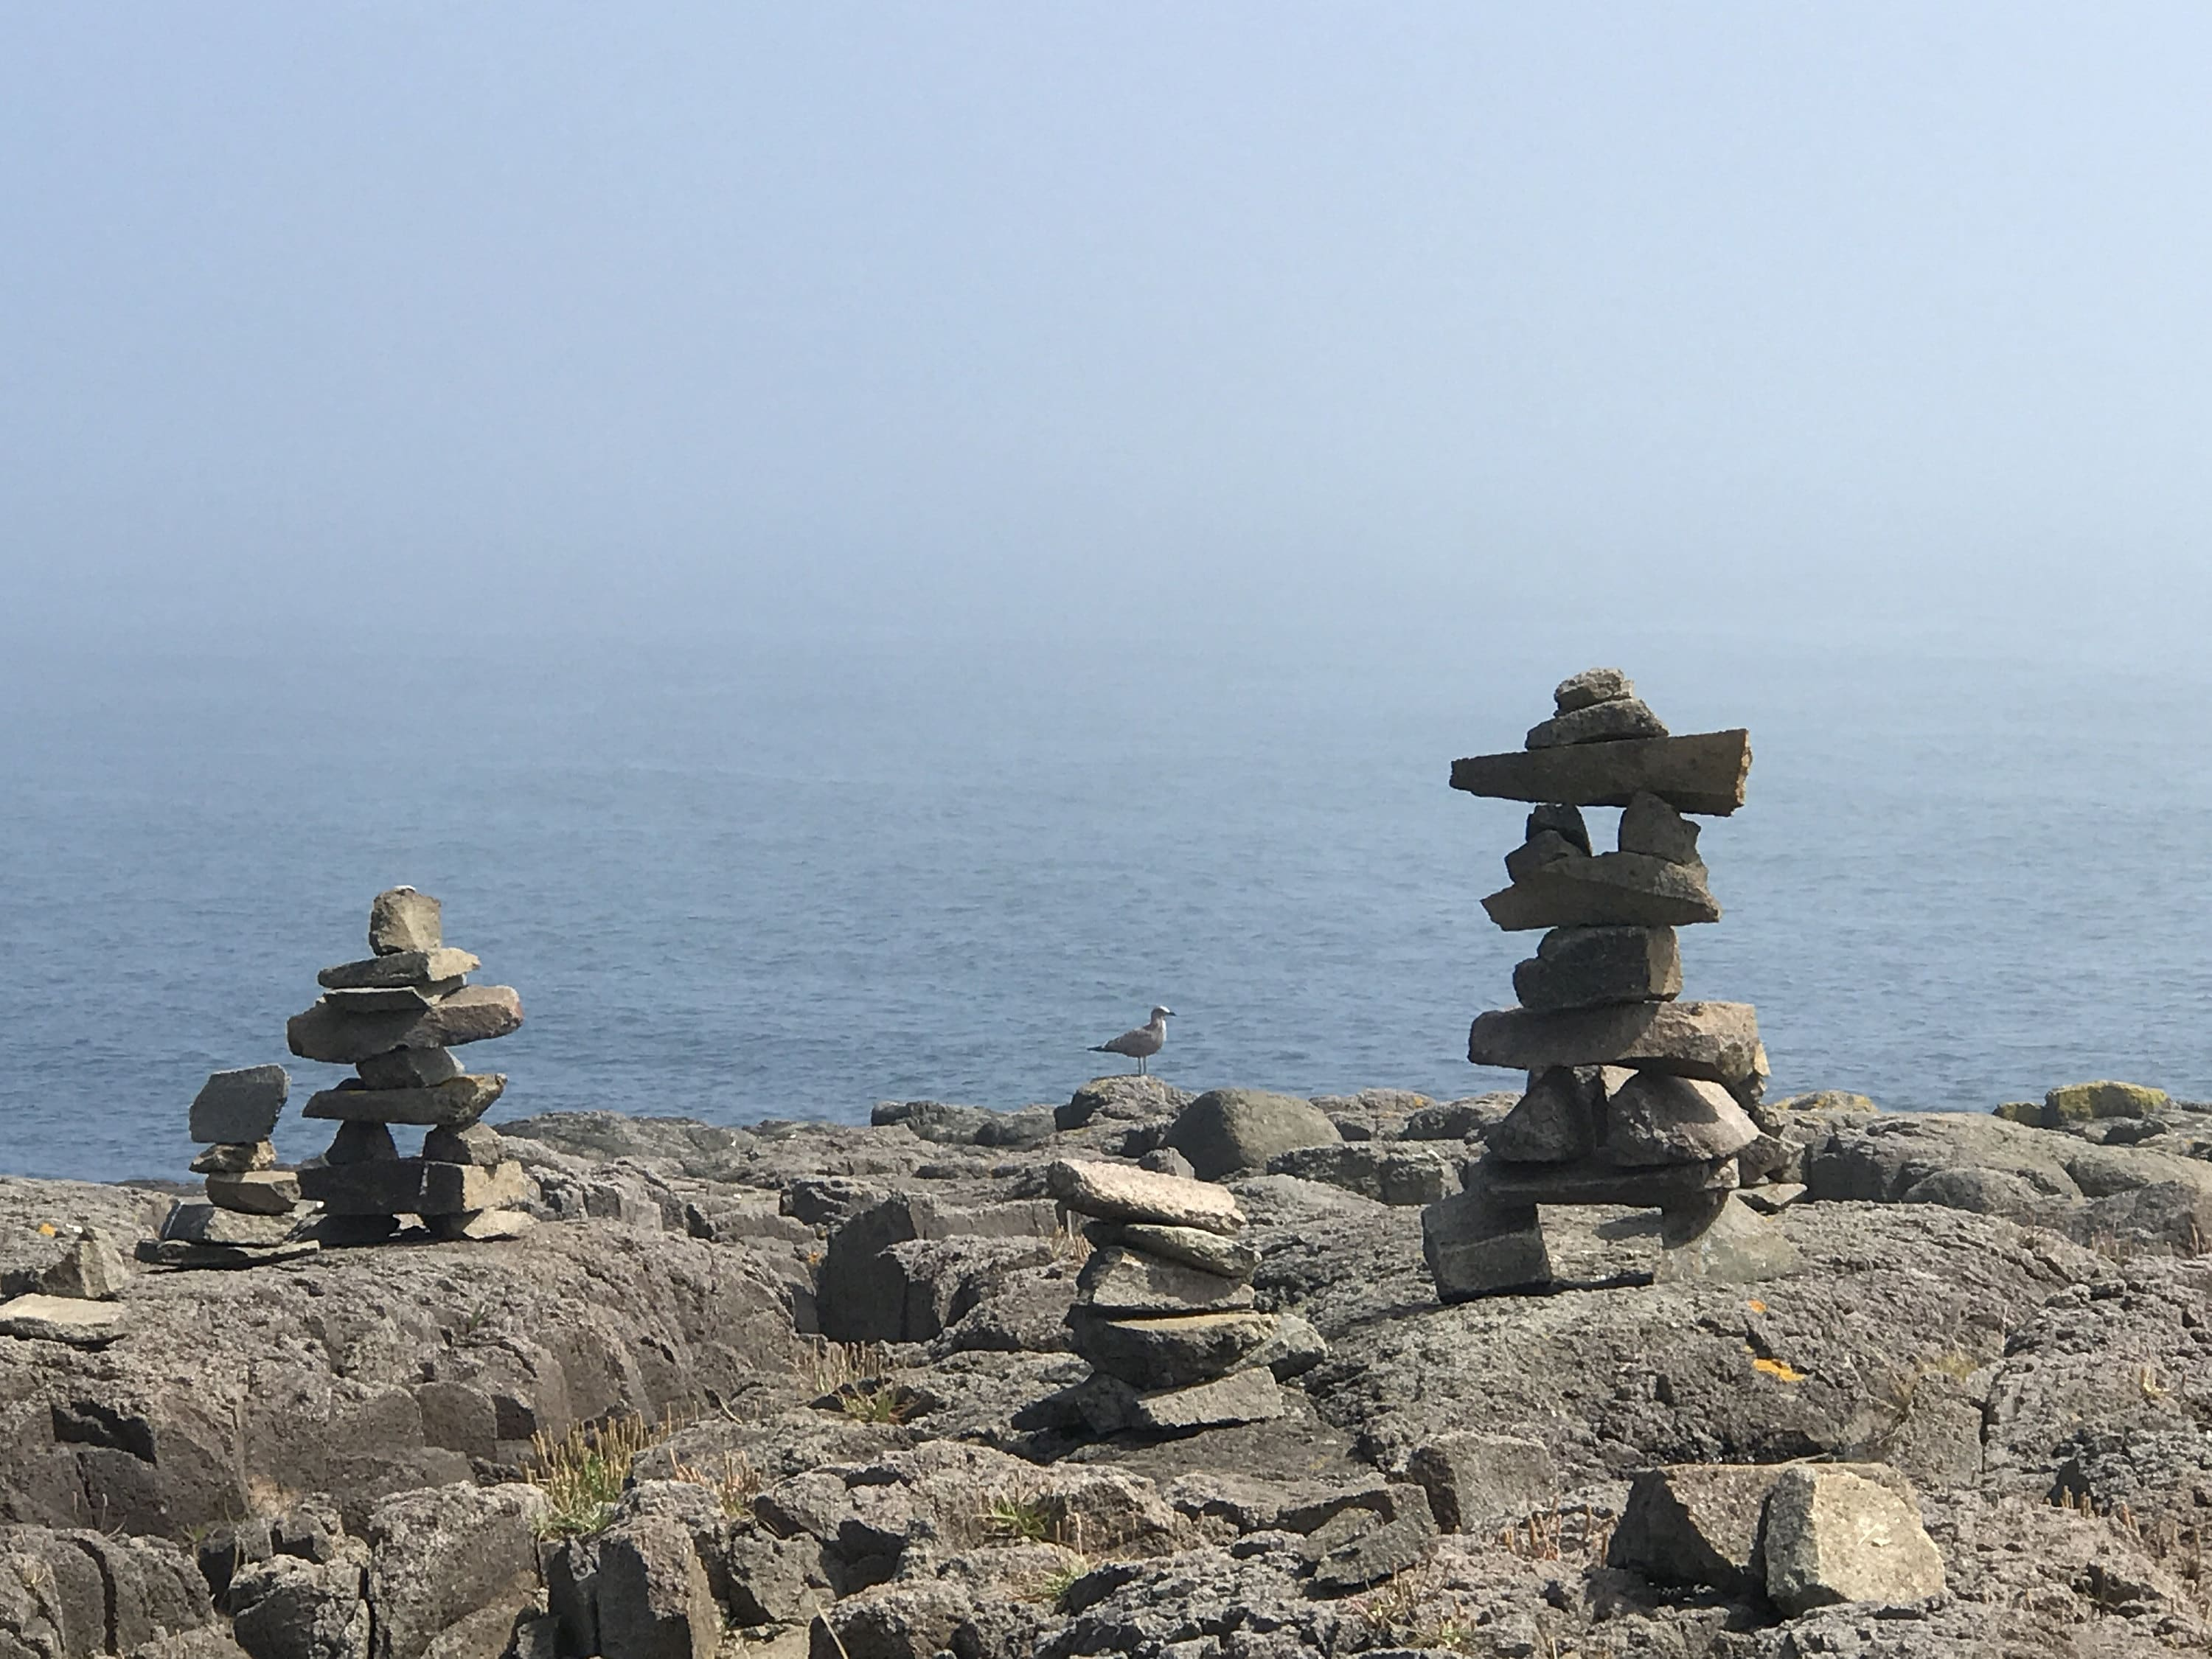 inukshuk on brier island, nova scotia